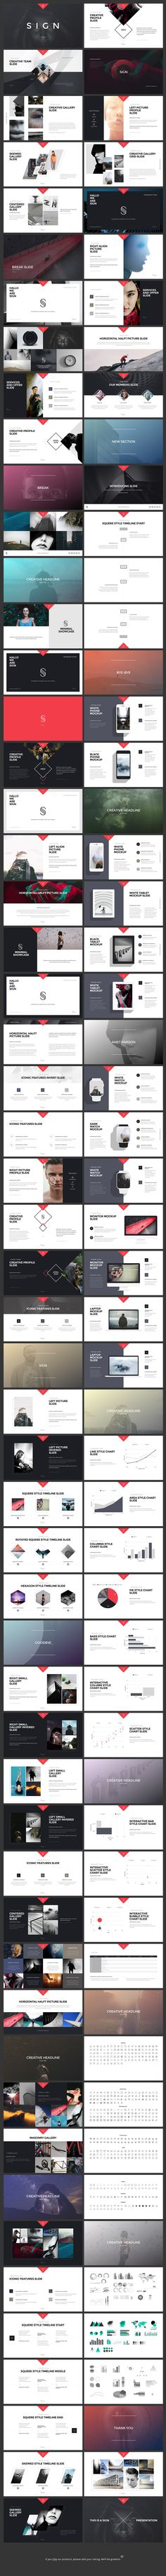 SIGN Keynote Presentation Template by GoaShape on @creativemarket